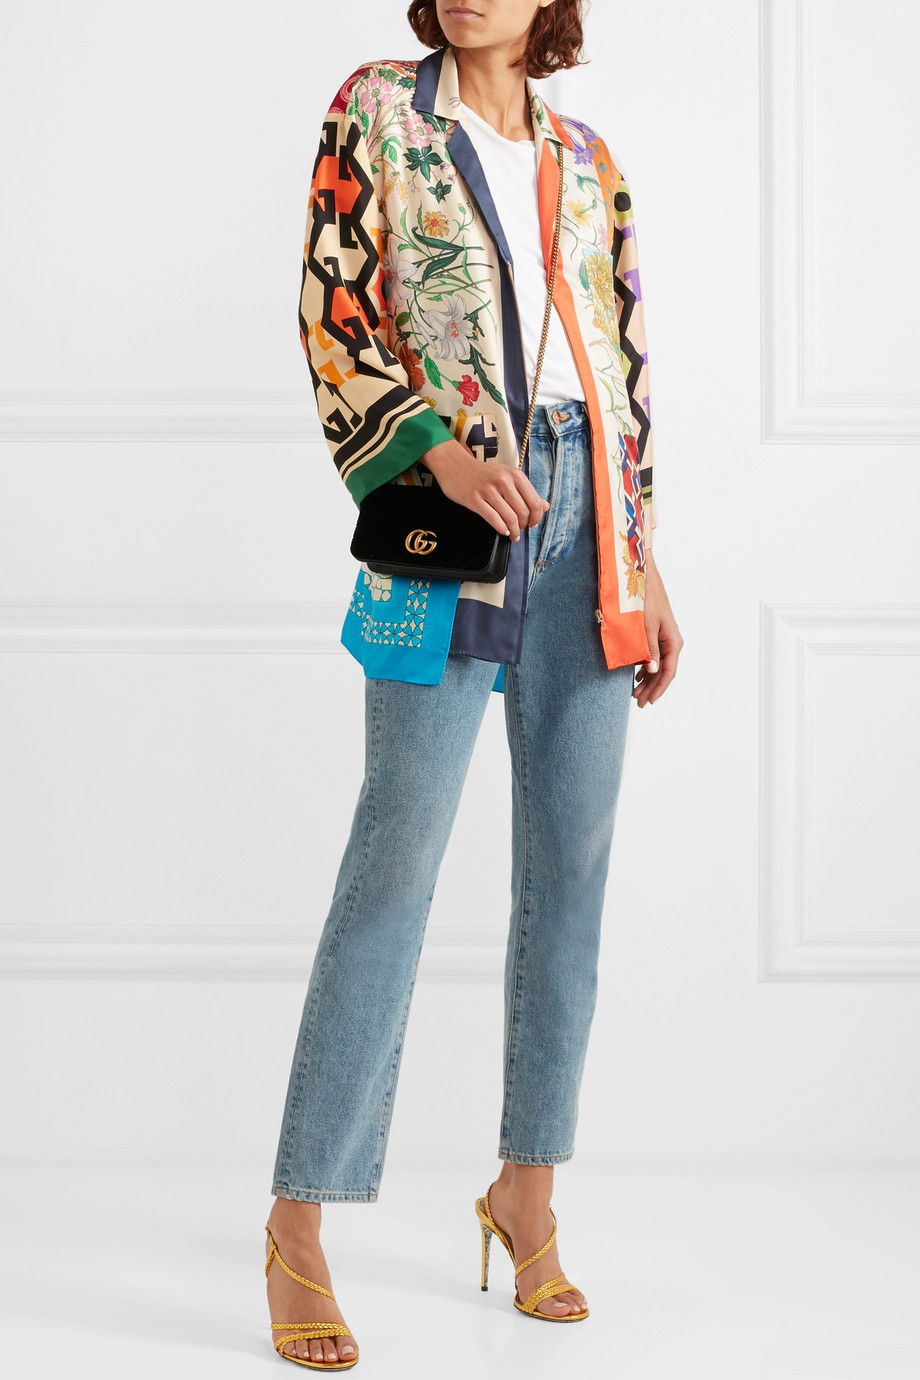 Printed blouse Gucci buy Printed blouse Gucci internet shop